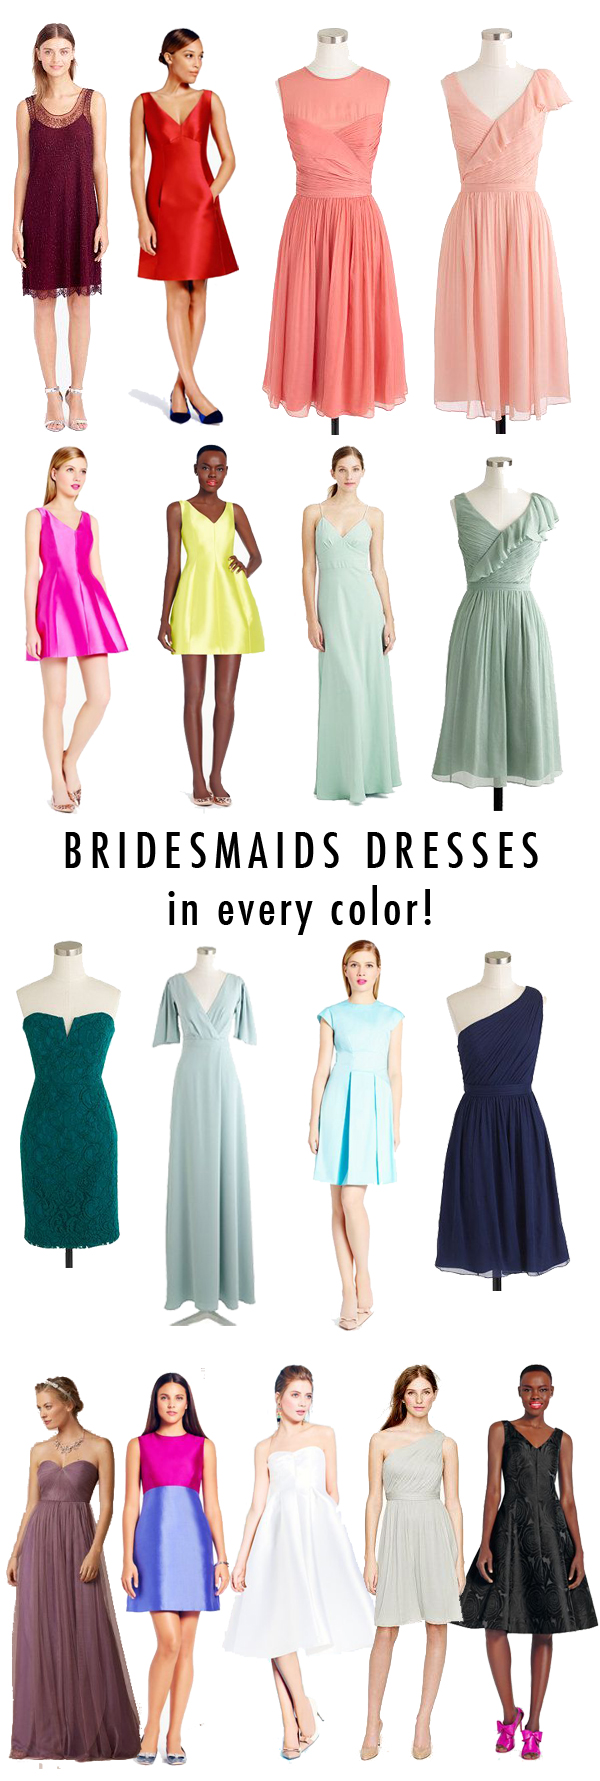 bridesmaids-dresses-in-every-color